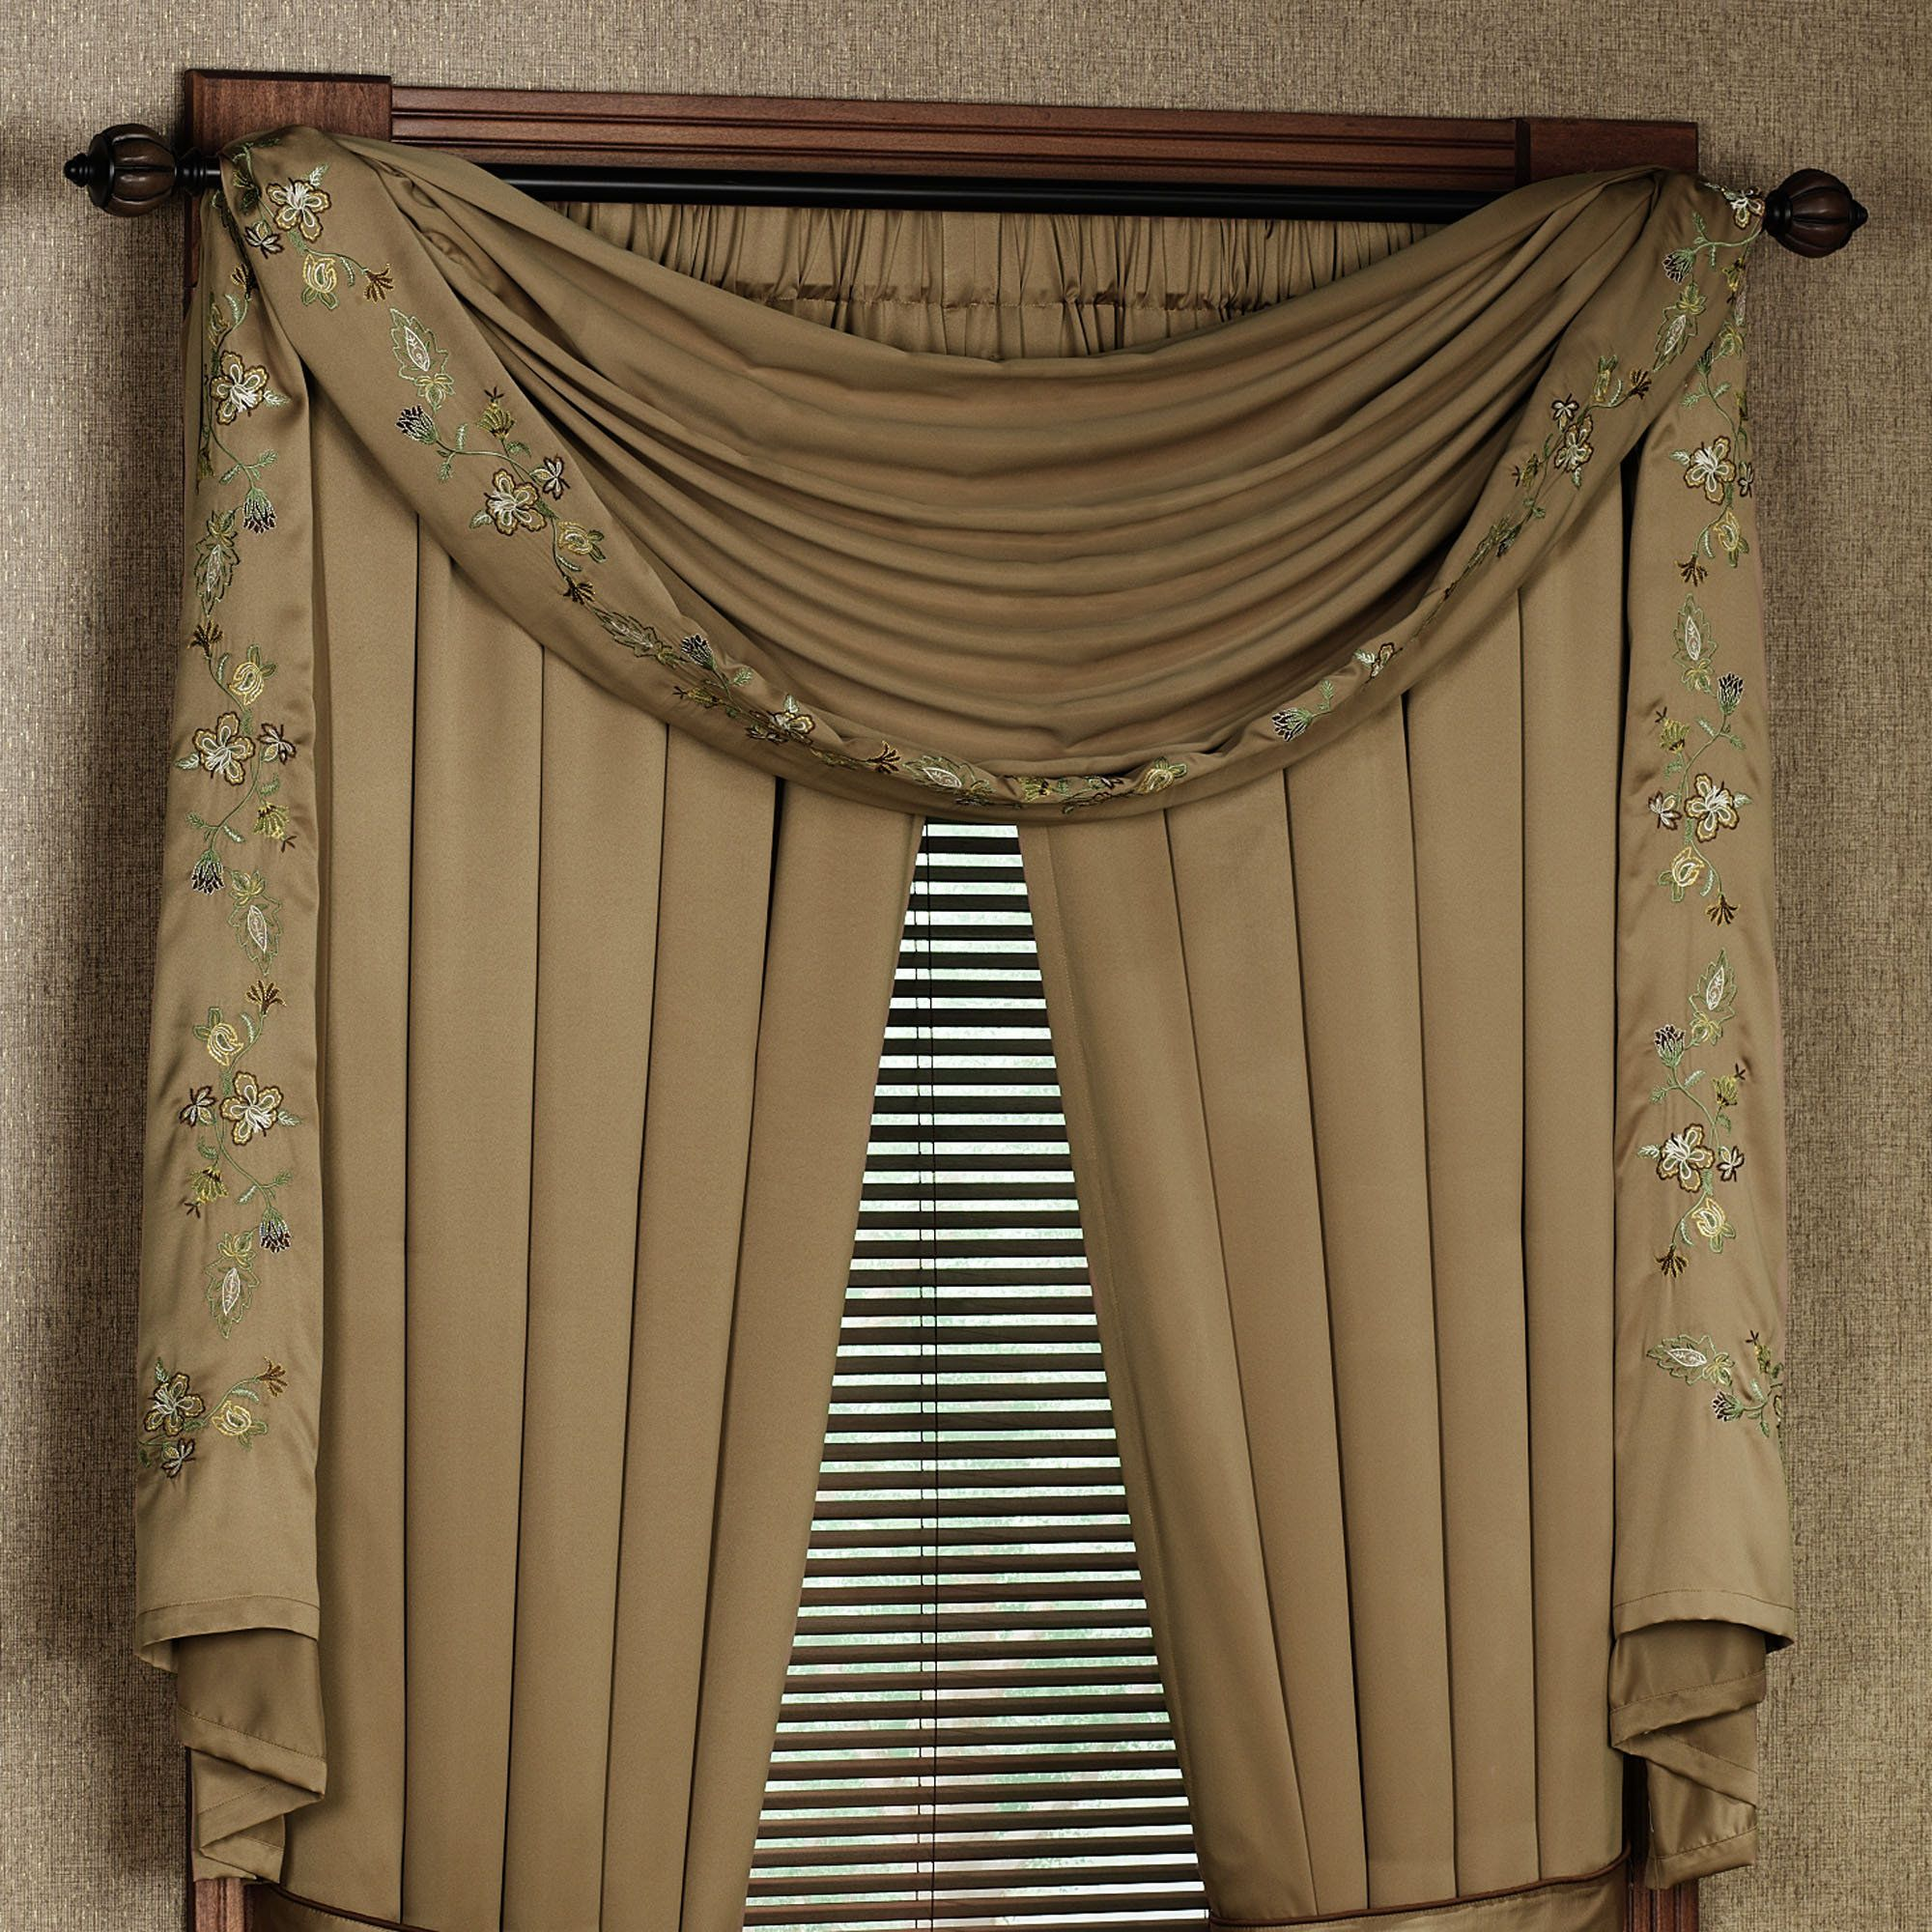 Using The Scarf Curtains Scarf Curtains Curtains Scarf Valance